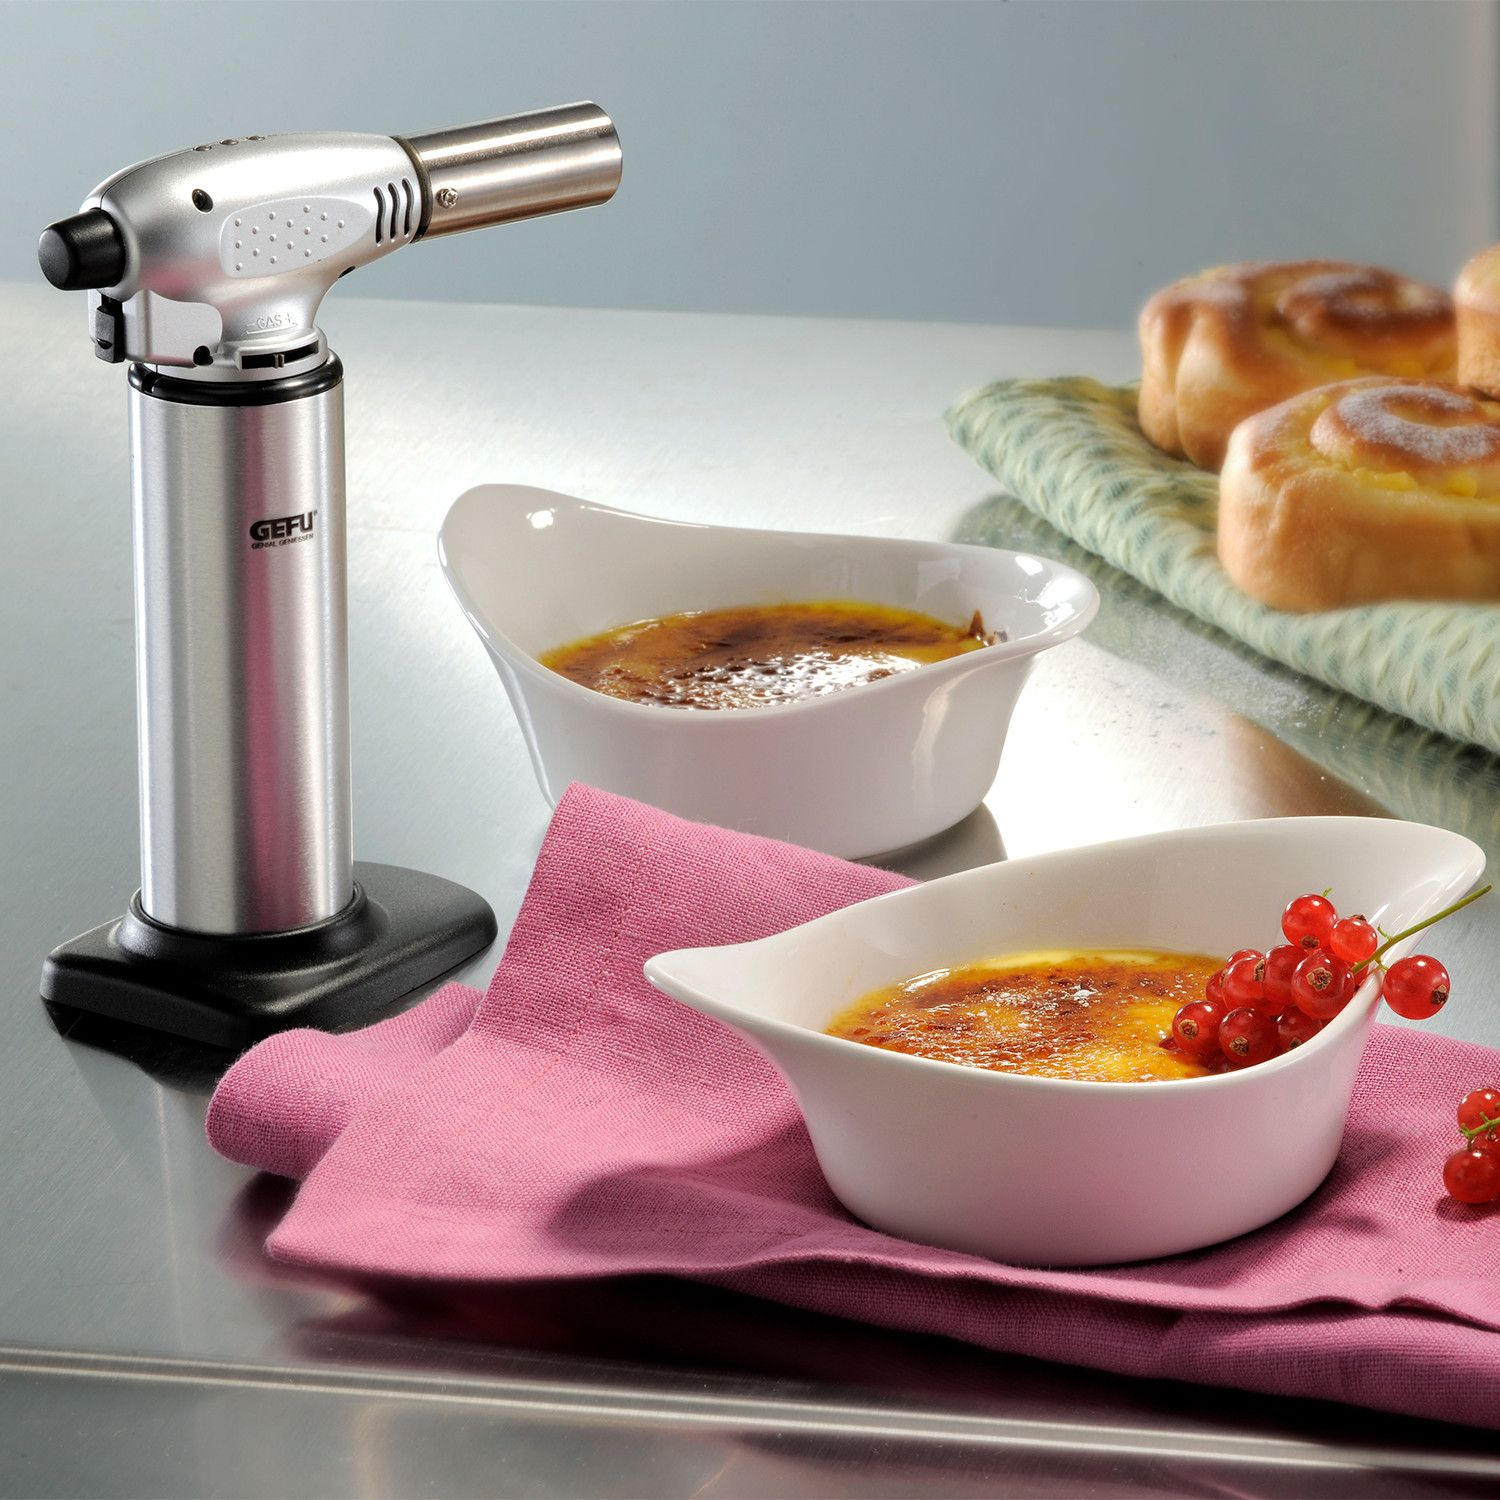 You can now prepare amazing desserts like the crème brûlée at home by using the rosle kitchen torch. Kitchen Torch   Kitchen torch, Au gratin, Quality kitchens